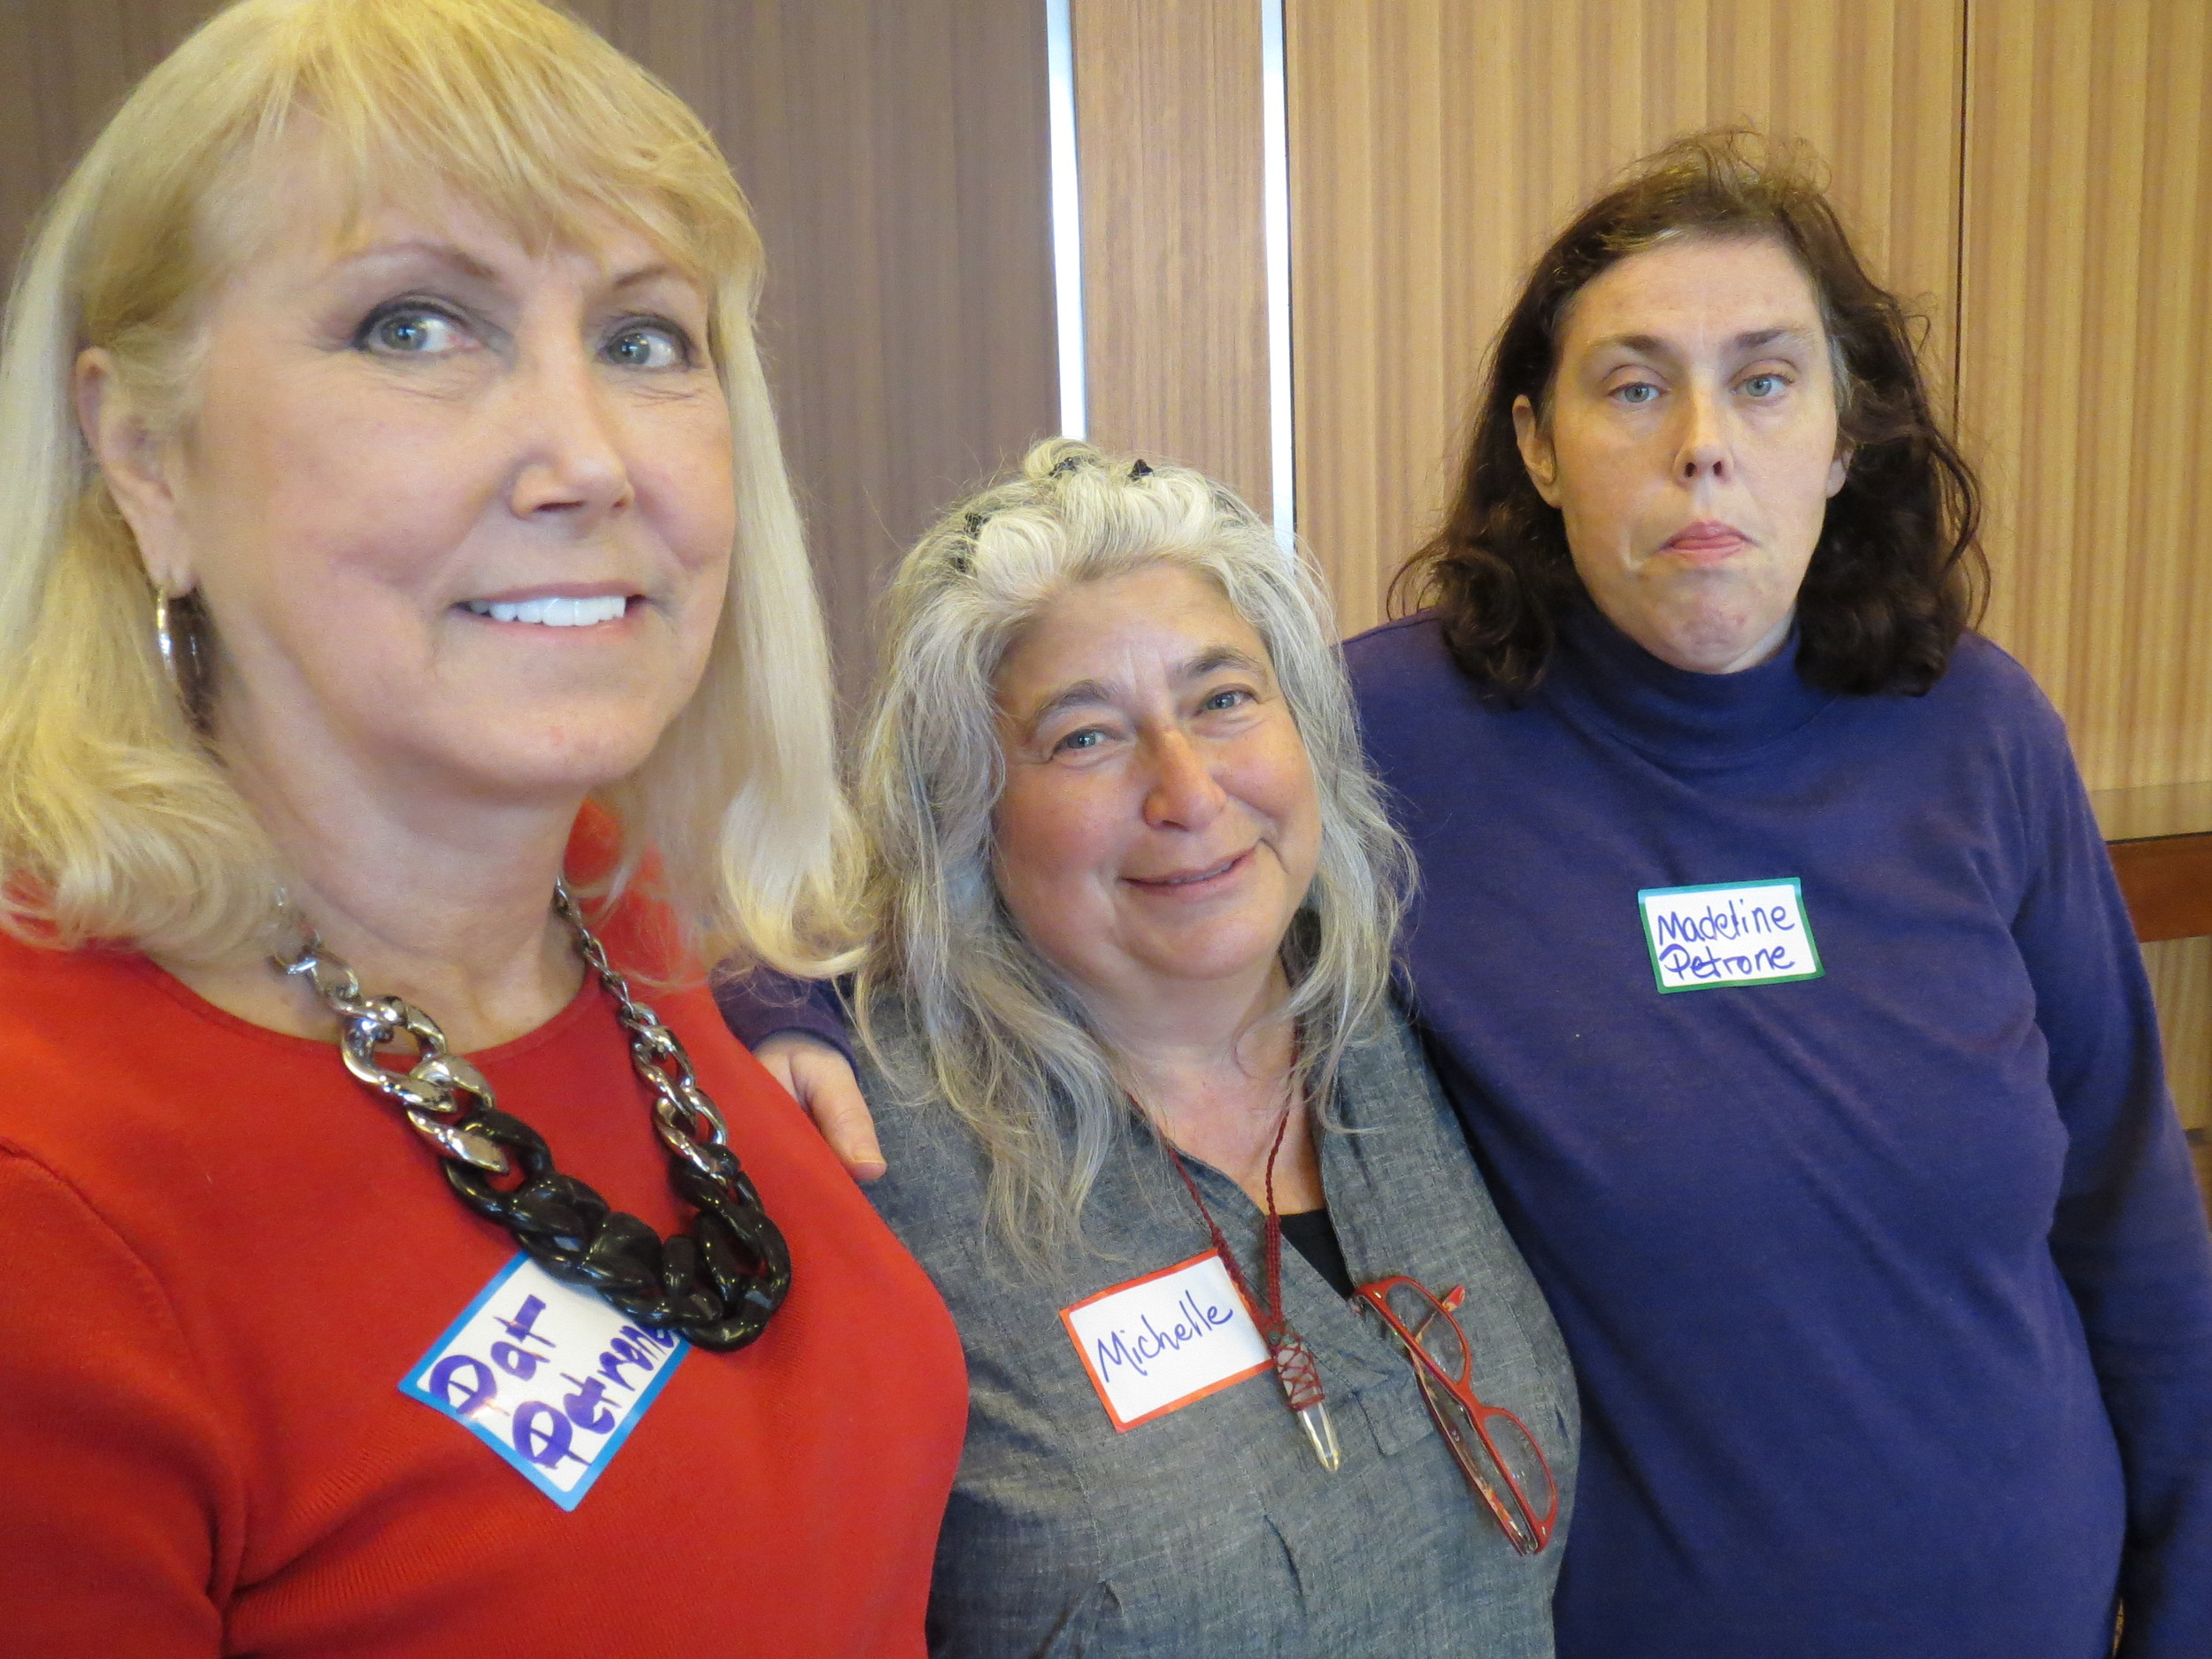 From left, Pat Petrone Walczak, Michelle Schwartz and Madeline Petrone all champion Georgia's growing self-advocacy movement.